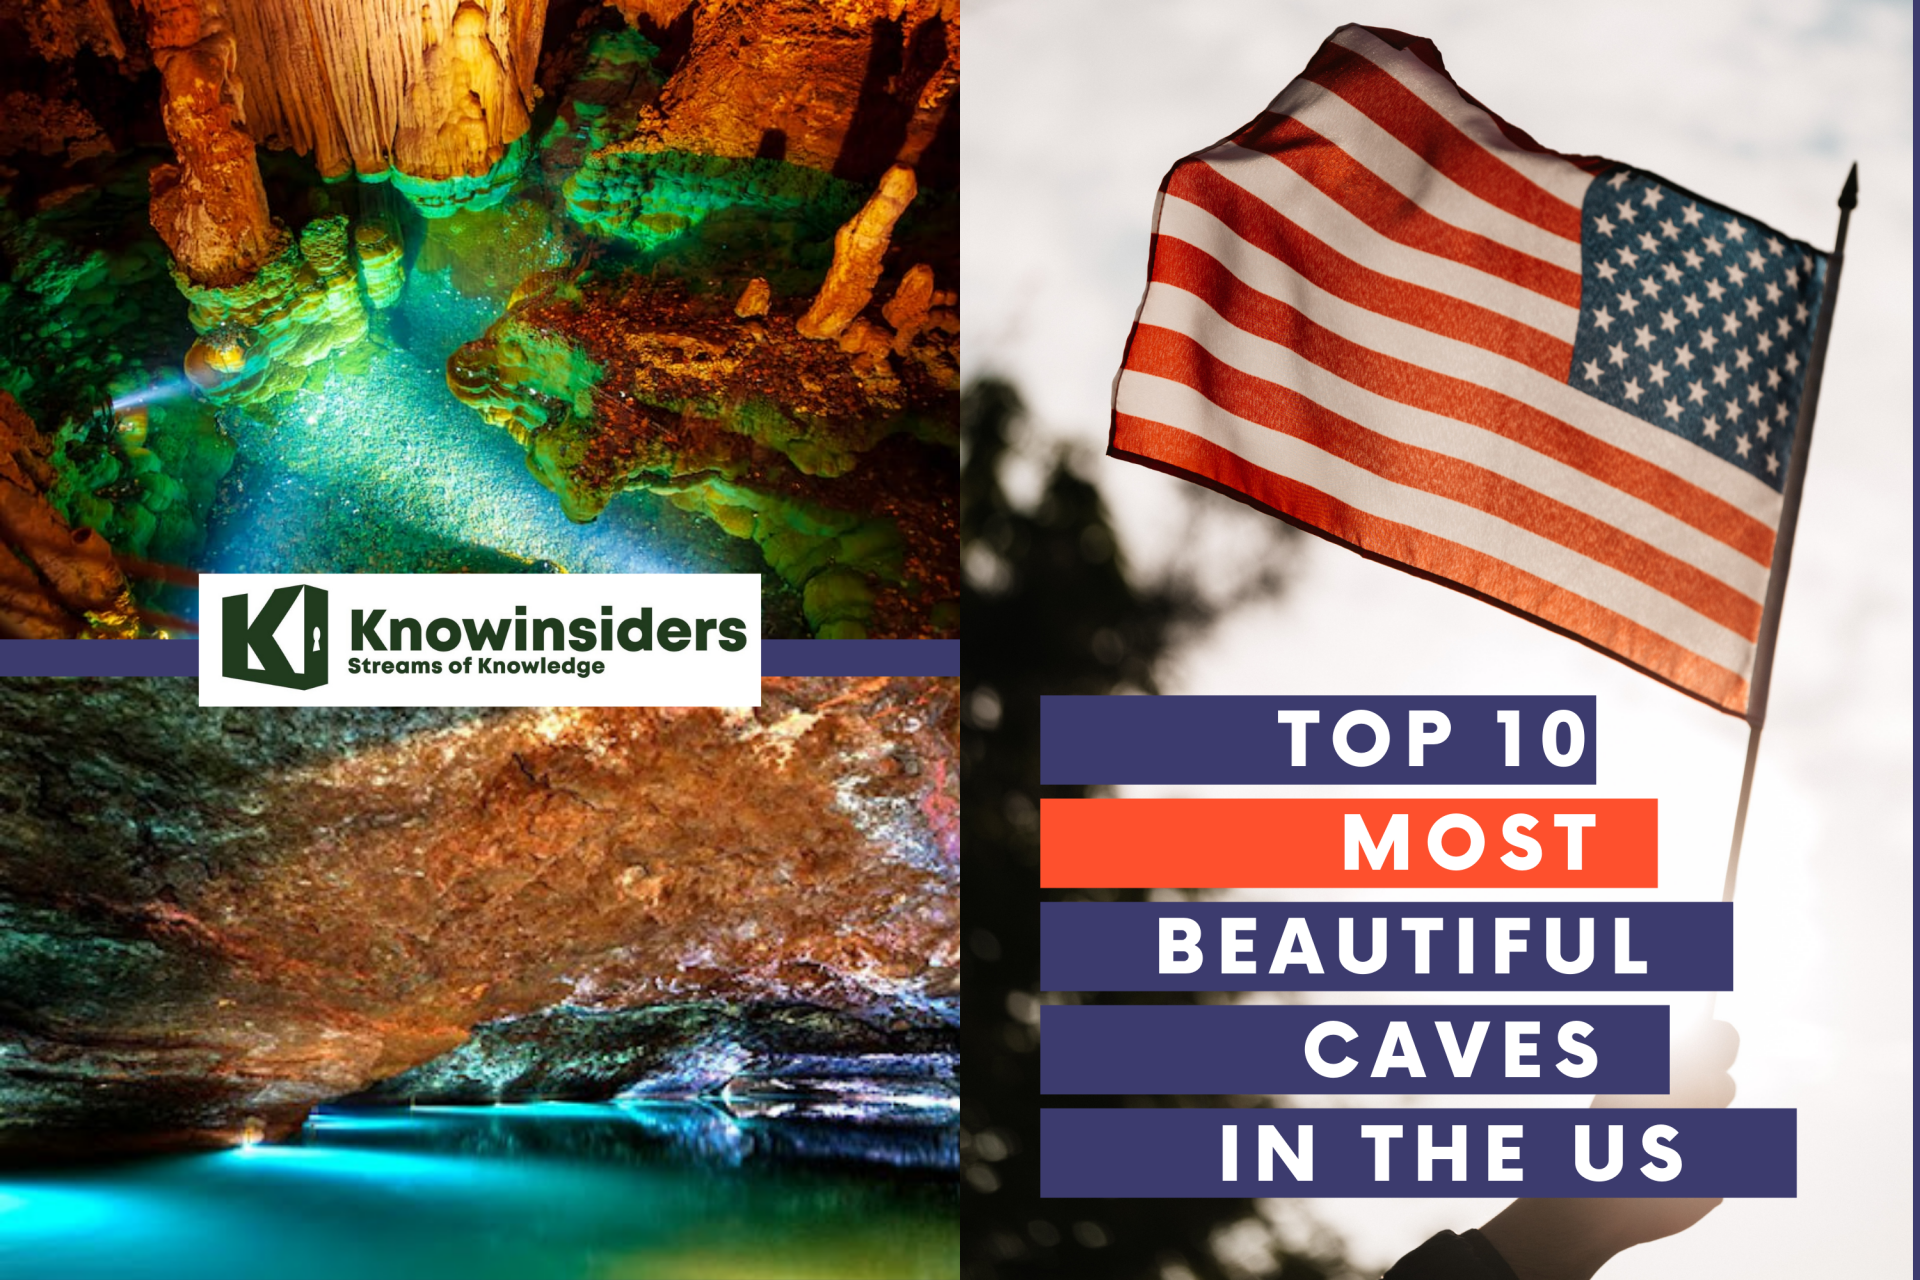 Top 10 Most Beautiful Caves in the US